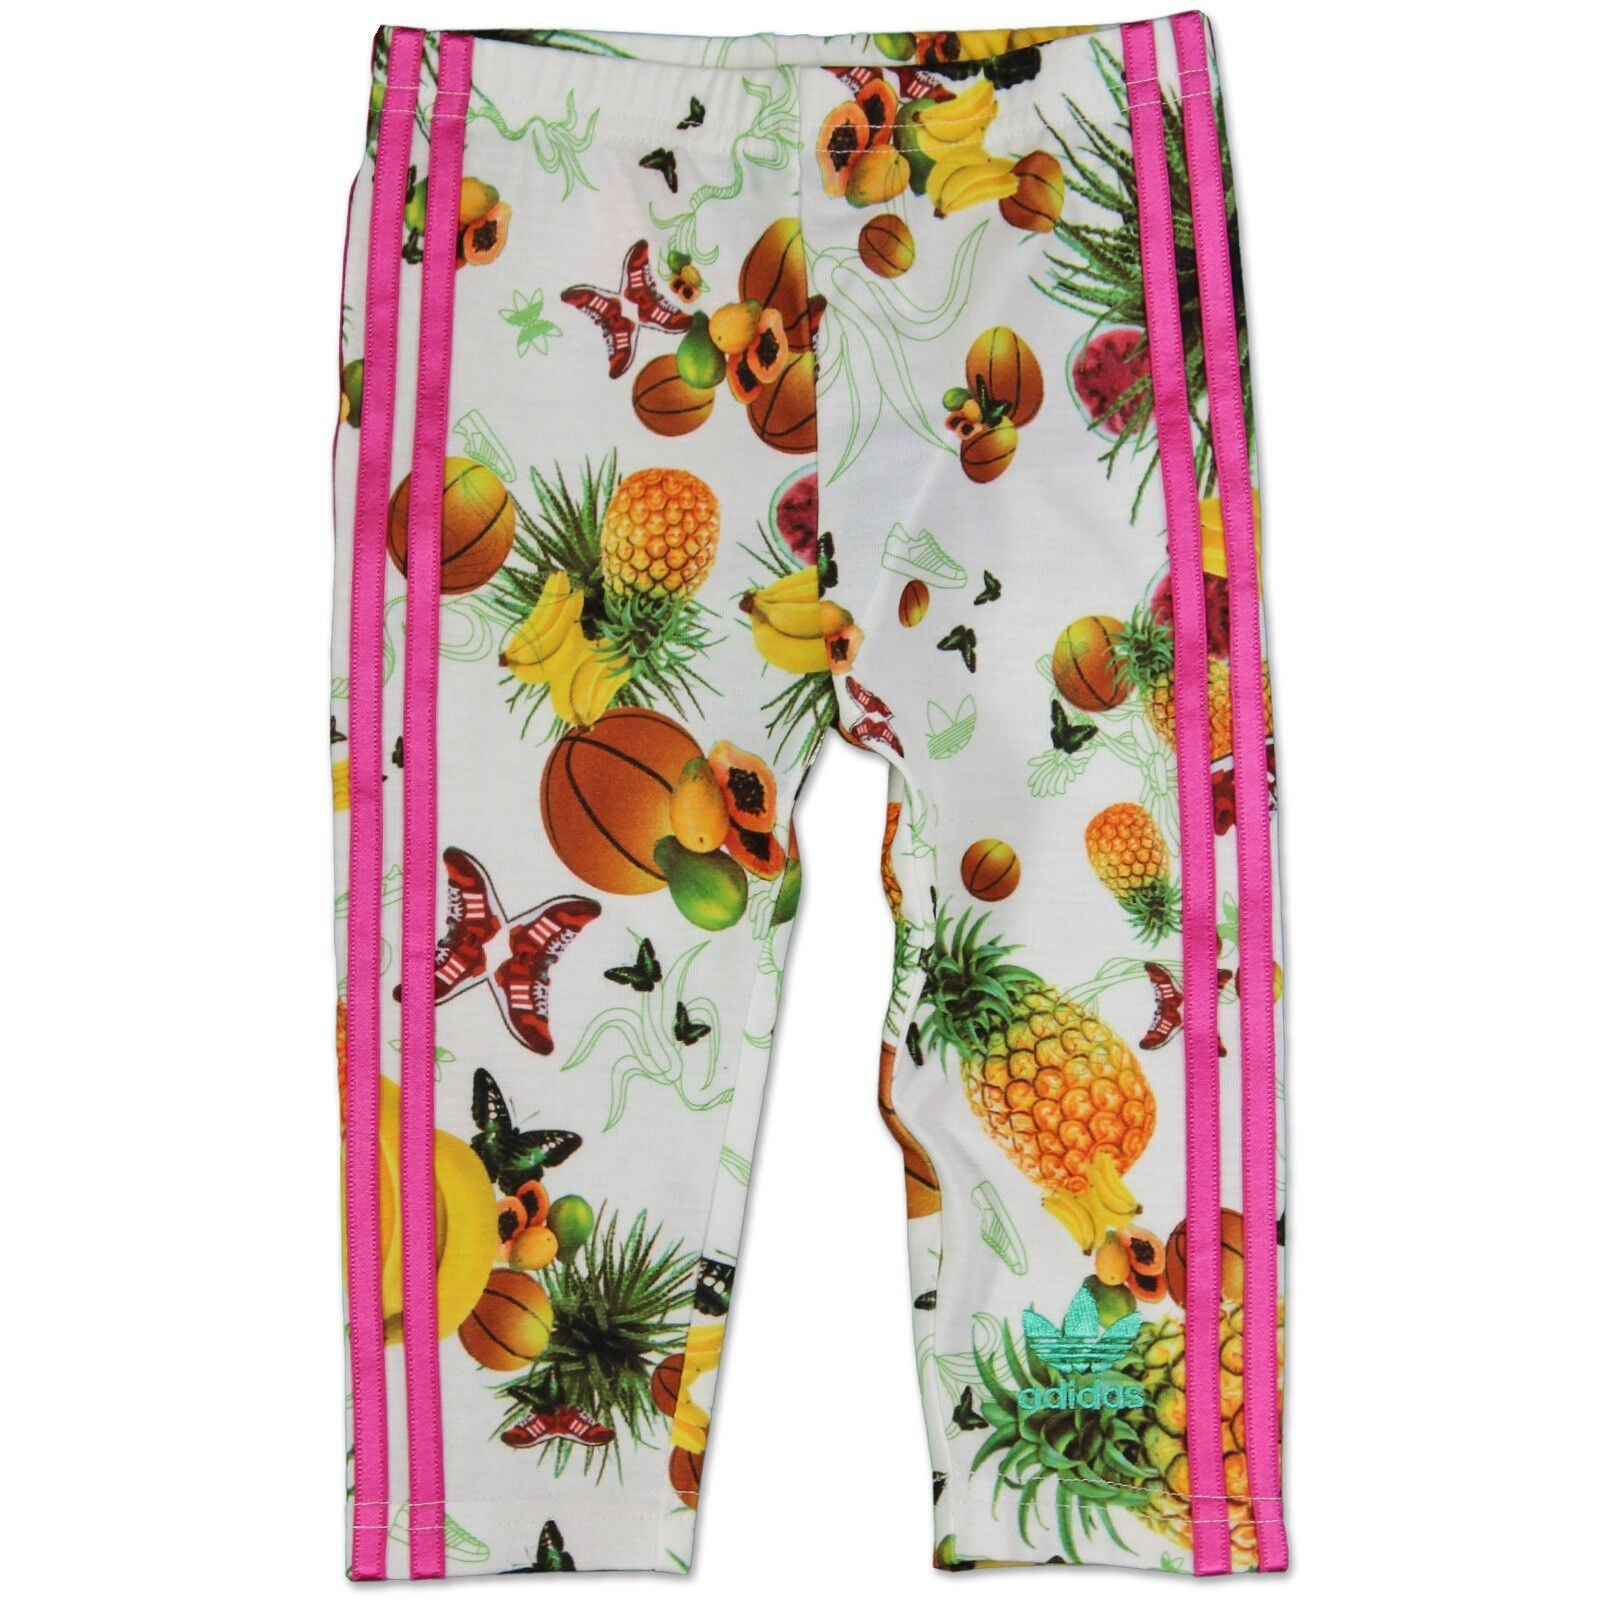 Adidas Originals Fille Fruit Fruits Pantalons Bébé Enfants Leggings Blanc Rose 68